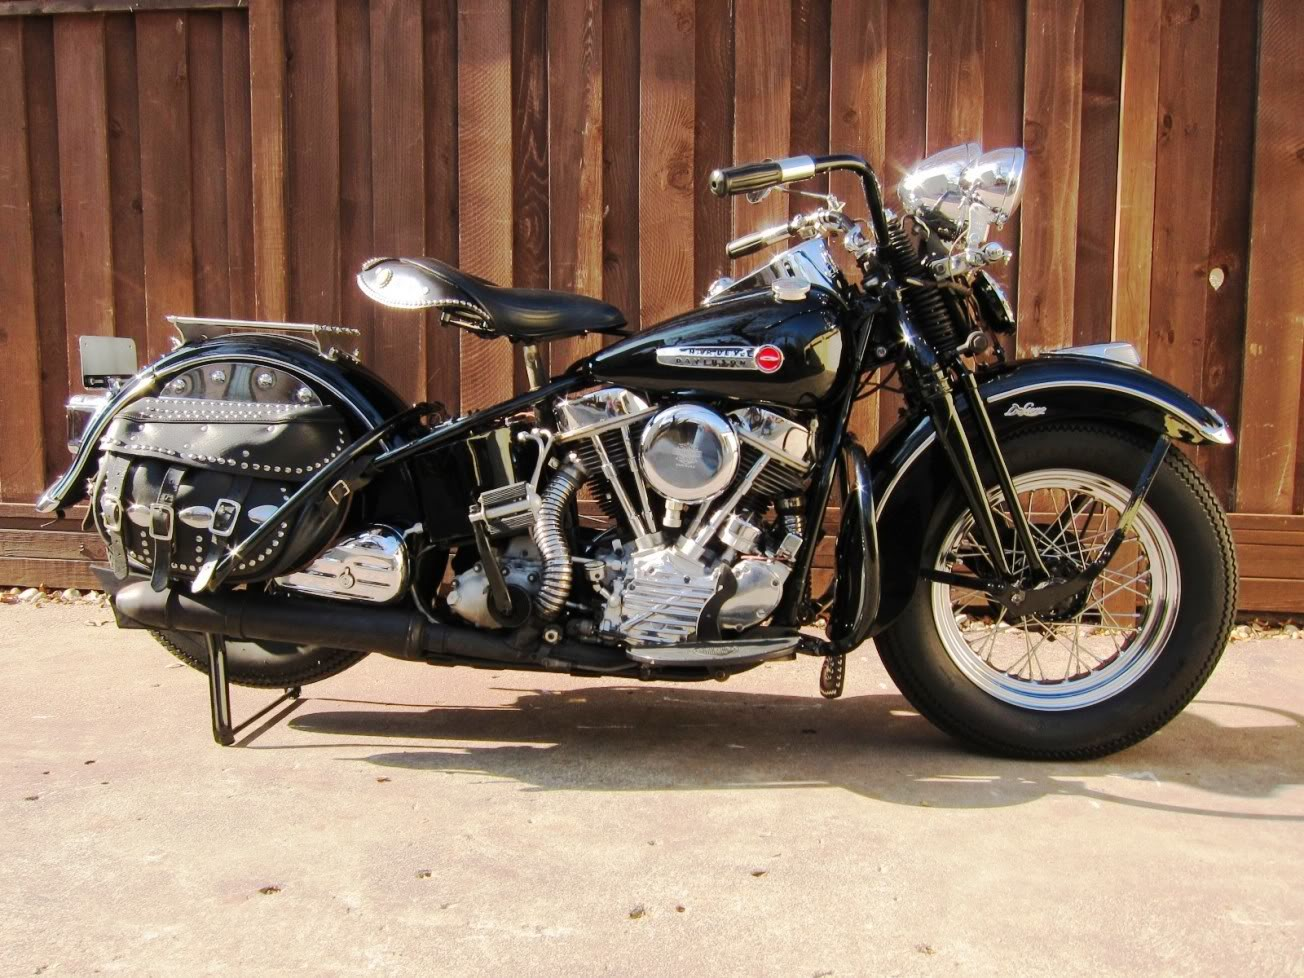 1948 Harley Davidson Fl Panhead By Adolph Ogar on new harley parts